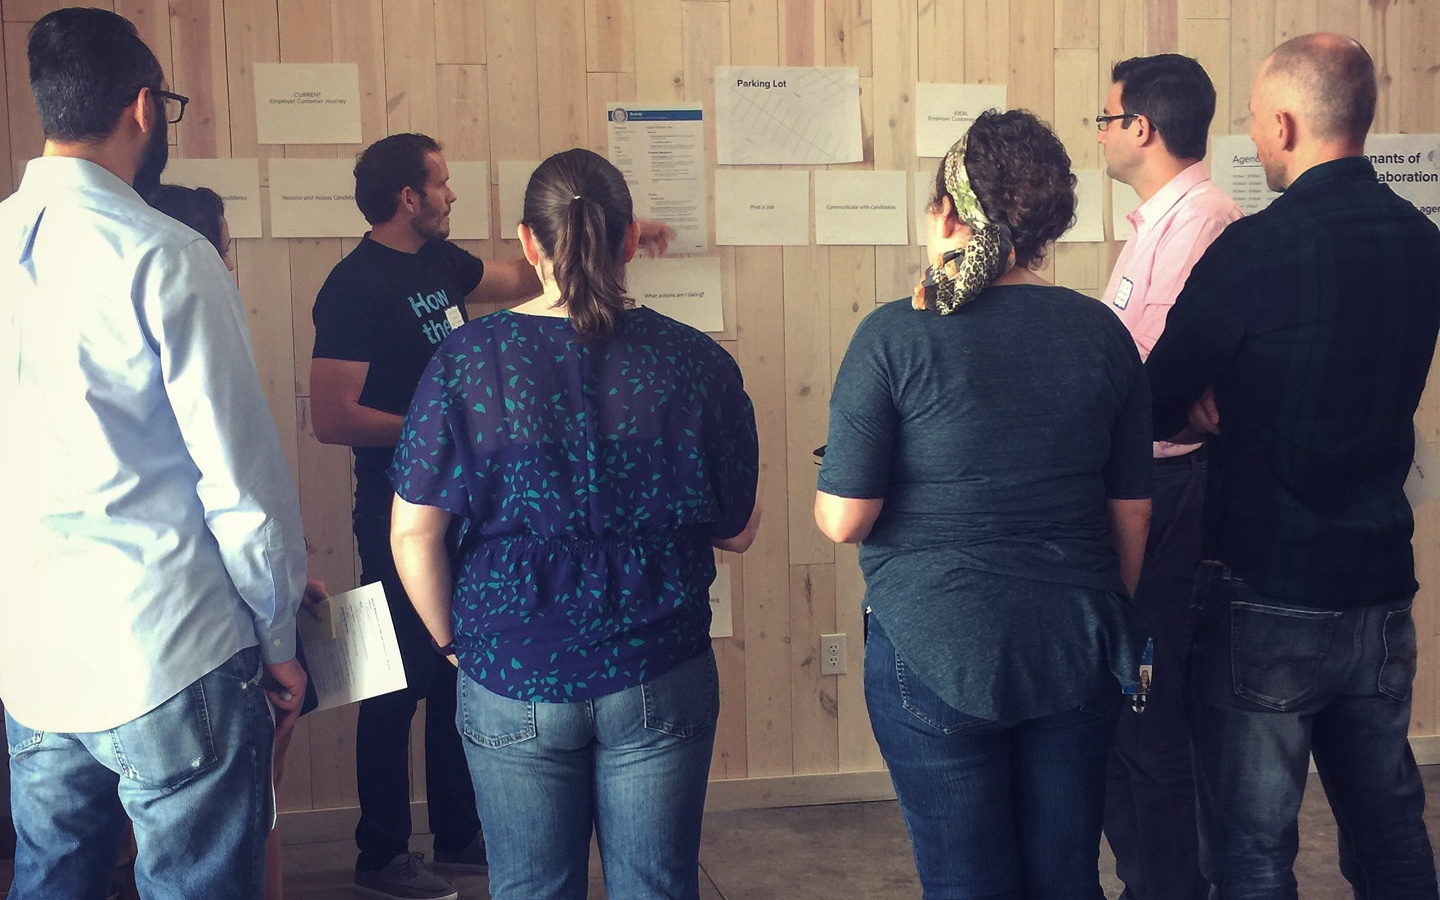 Specialized Exercises - Like products themselves, no two design processes are exactly alike. We offer a range of adaptable workshop formats, discovery exercises, and visualization tools to conjure your next big idea: from strategy tools like empathy maps to tactical activities like swim lanes.